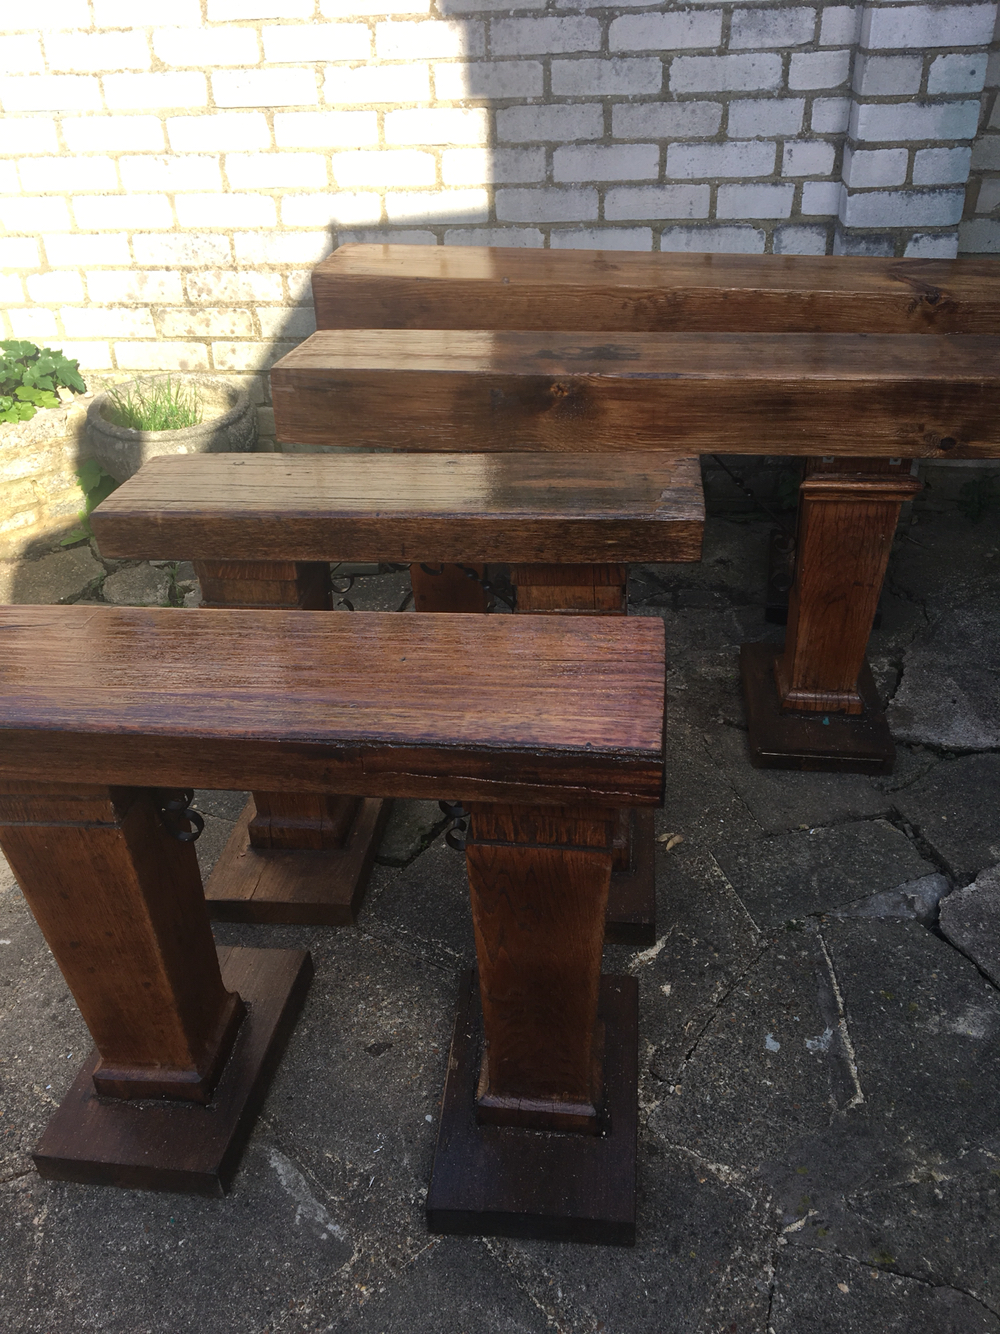 Garden Furniture Kings Lynn garden bench - second hand garden furniture, buy and sell in the